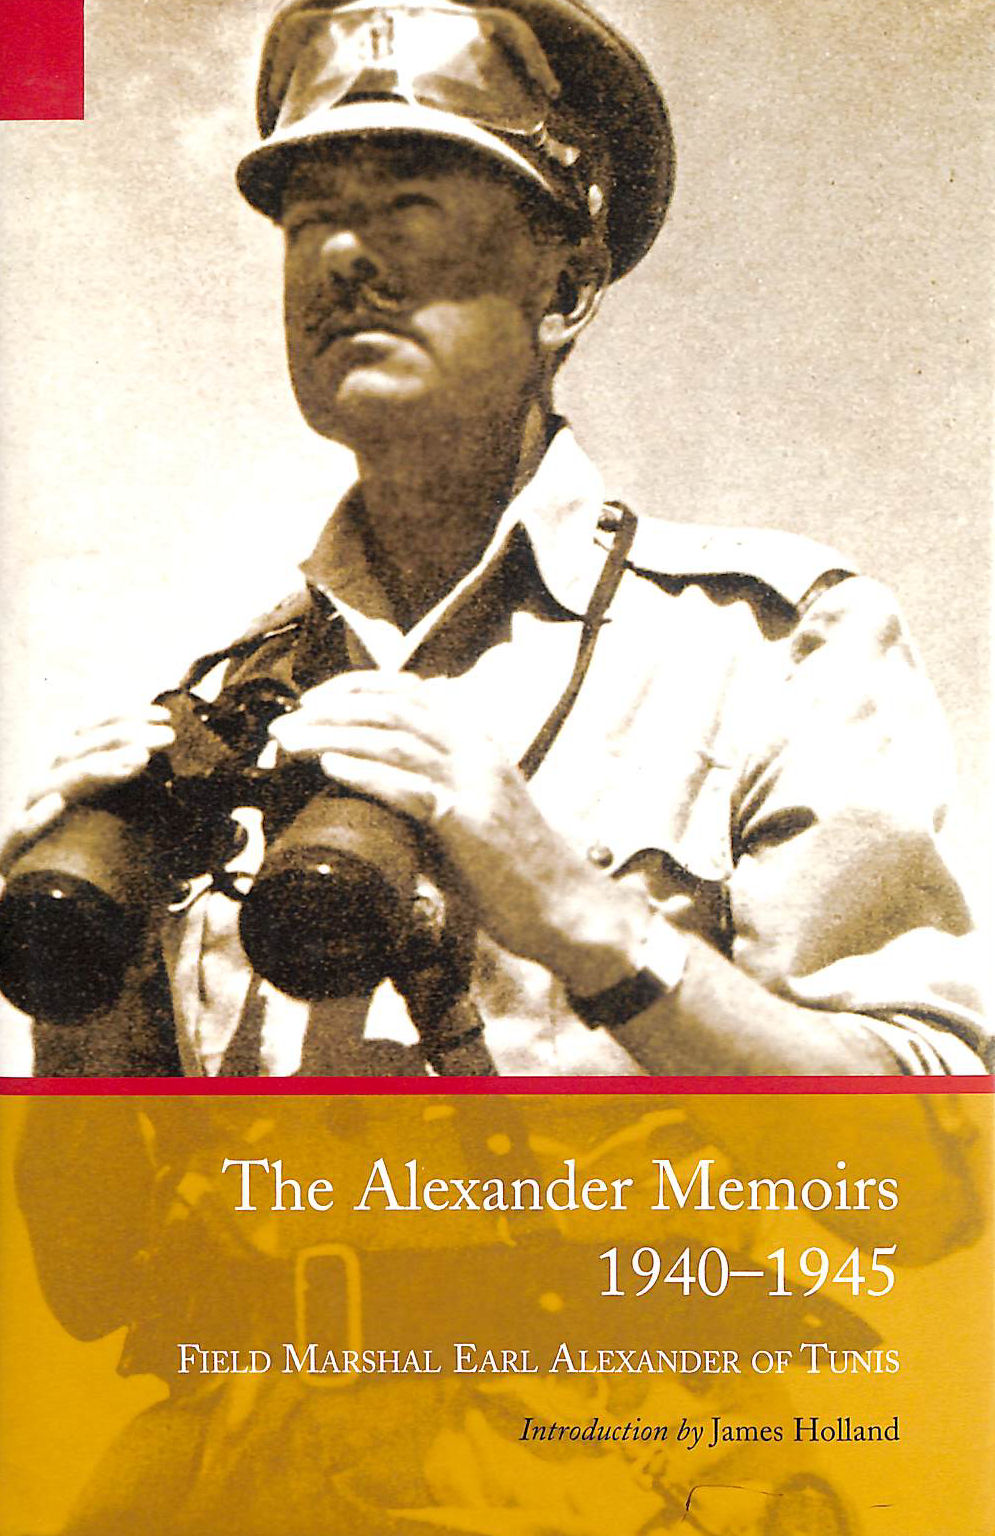 Image for The Alexander Memoirs, 1940-1945